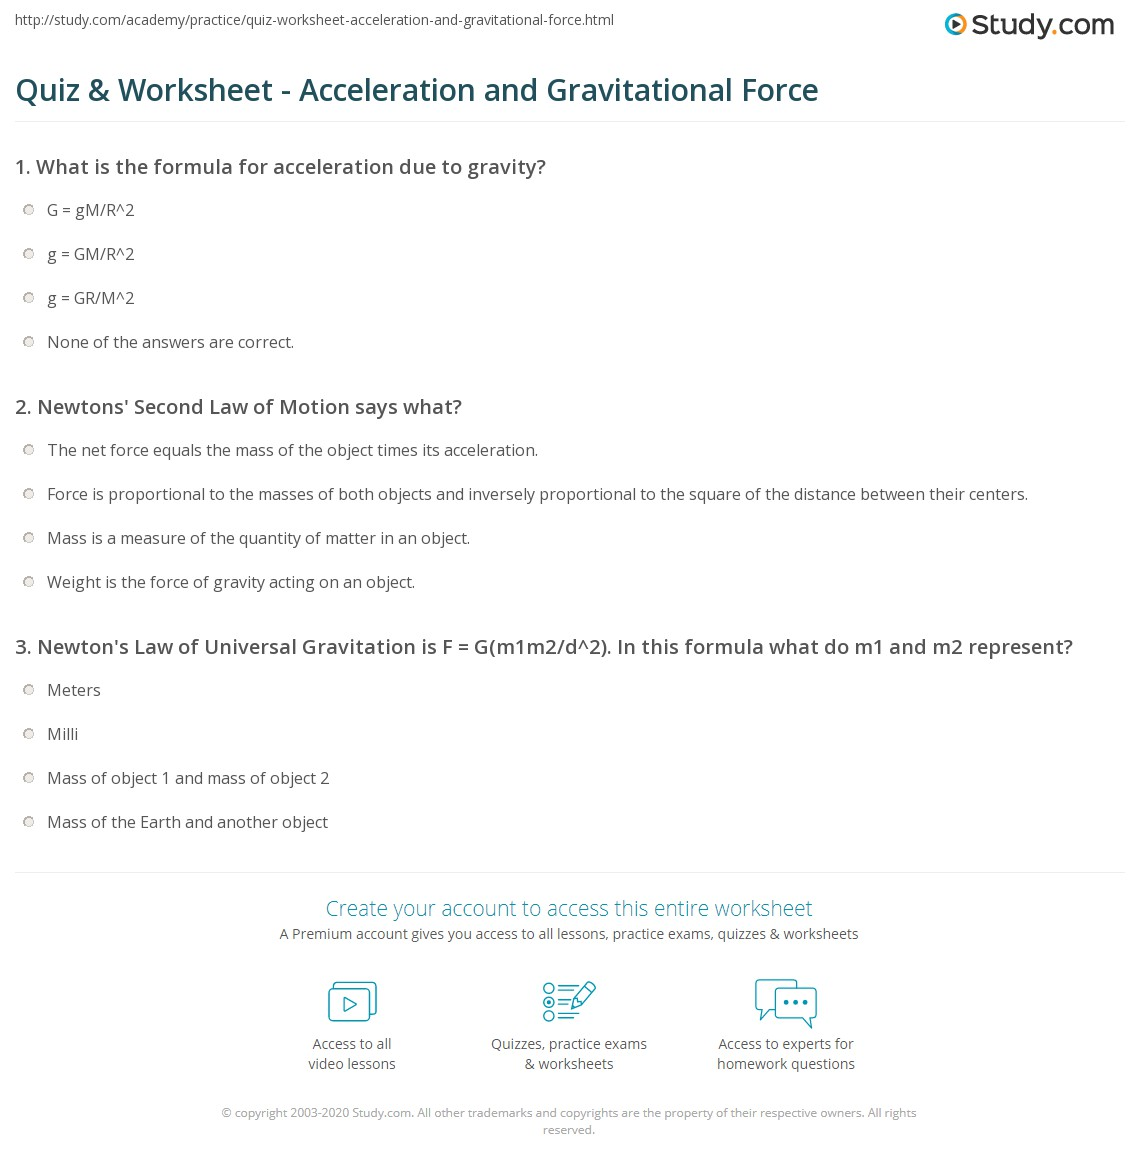 quiz worksheet acceleration and gravitational force. Black Bedroom Furniture Sets. Home Design Ideas